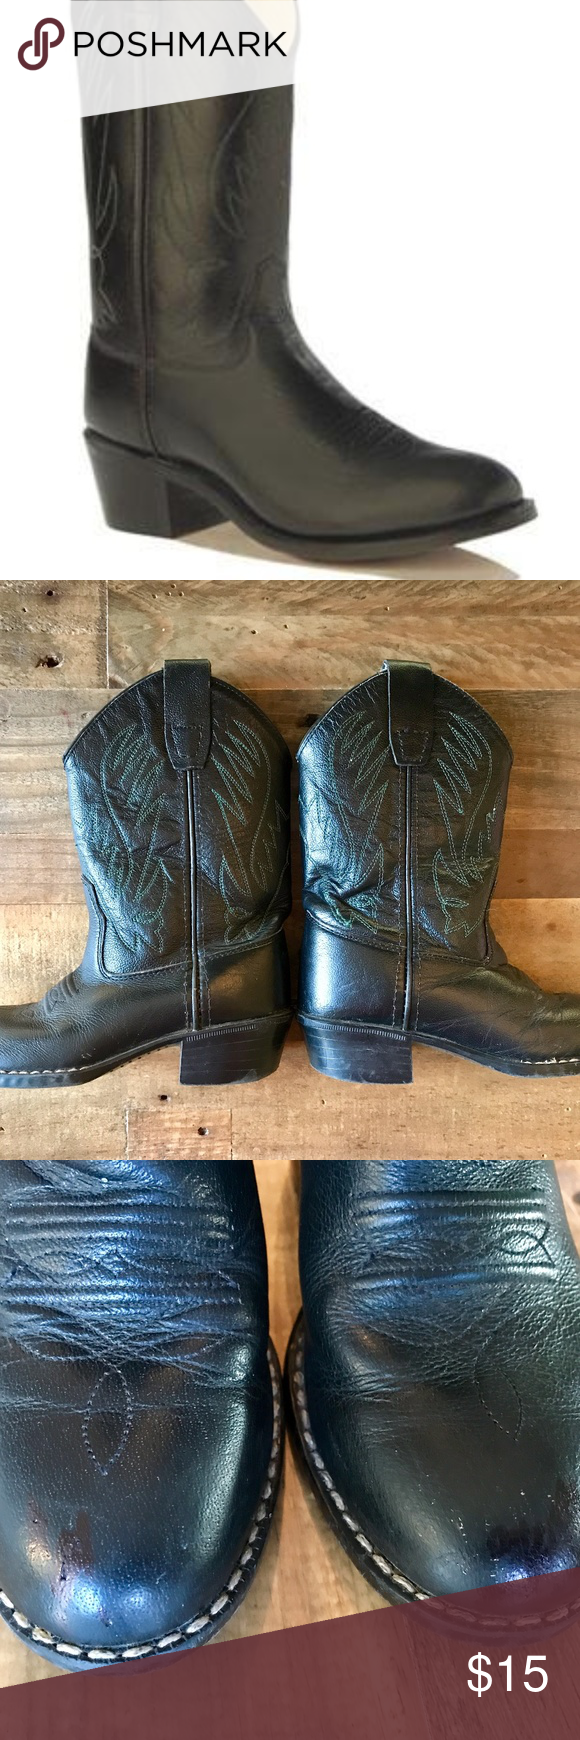 Old West Toddler Black Cowboy Boots Black Cowboy Boots Boots Black Leather Boots